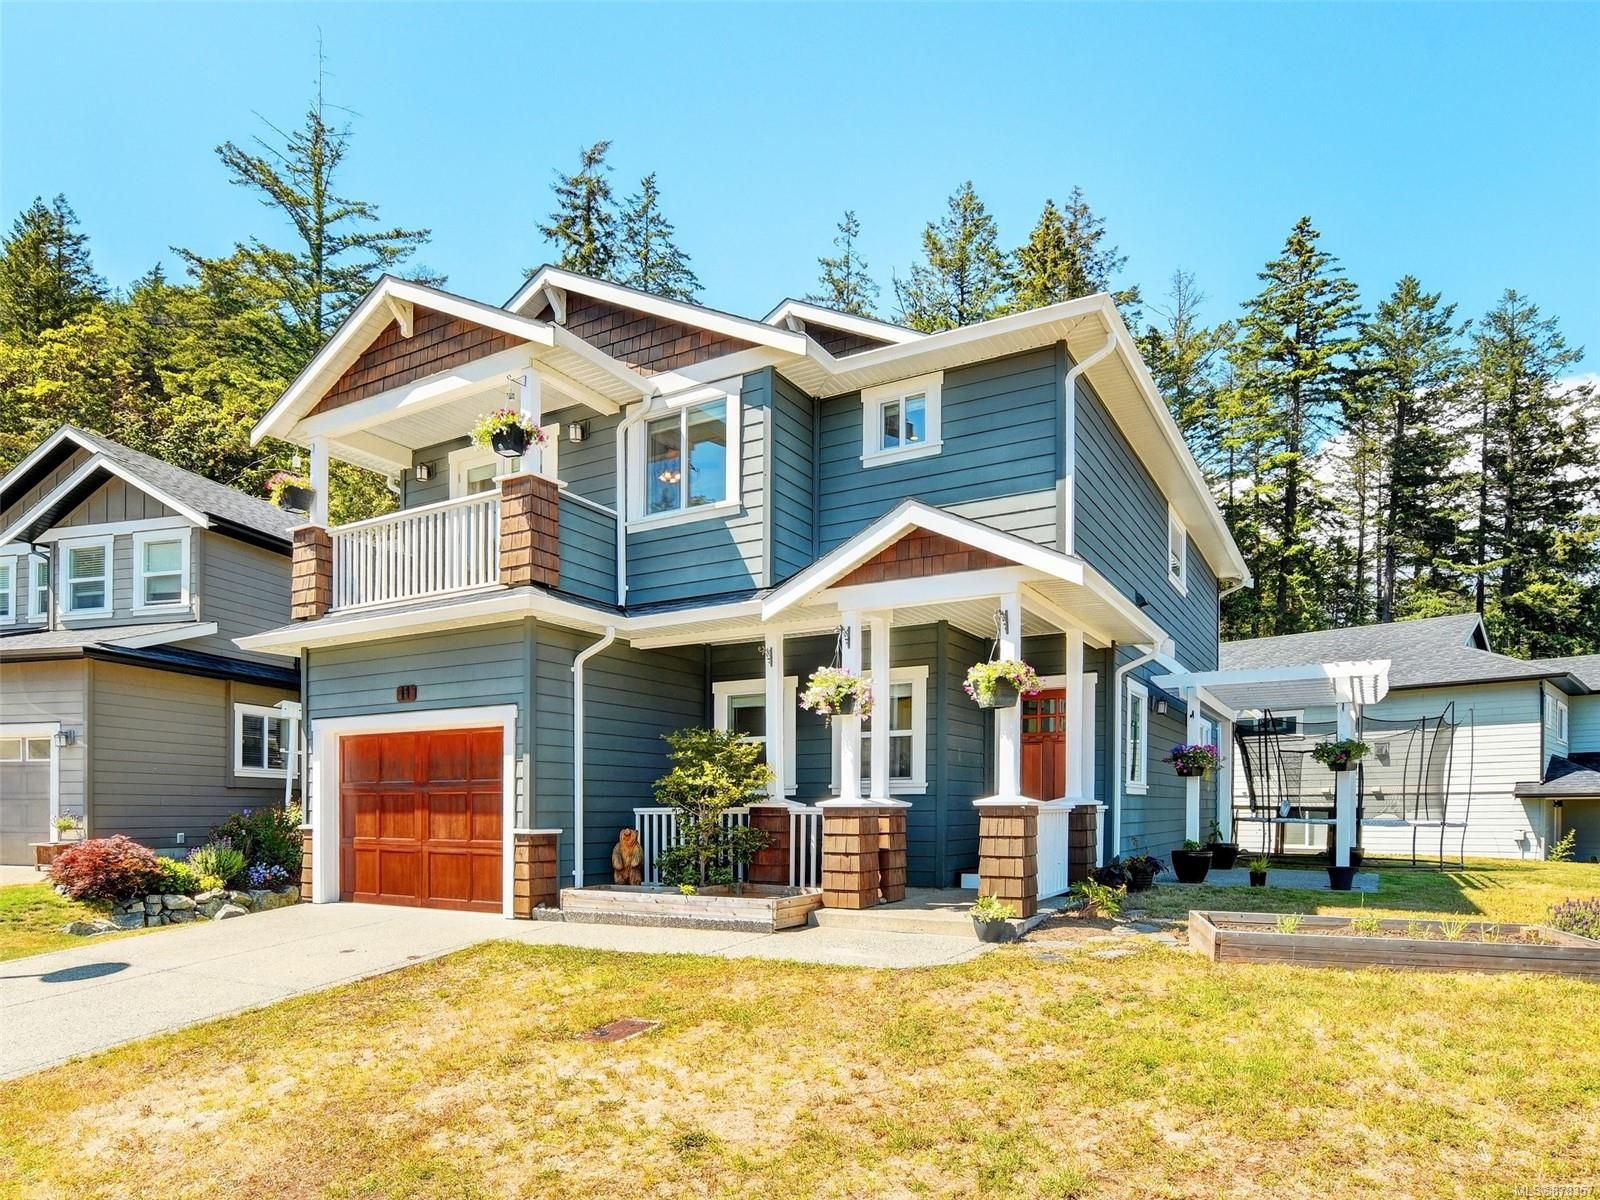 Main Photo: 11 Bamford Crt in : VR Six Mile House for sale (View Royal)  : MLS®# 878357